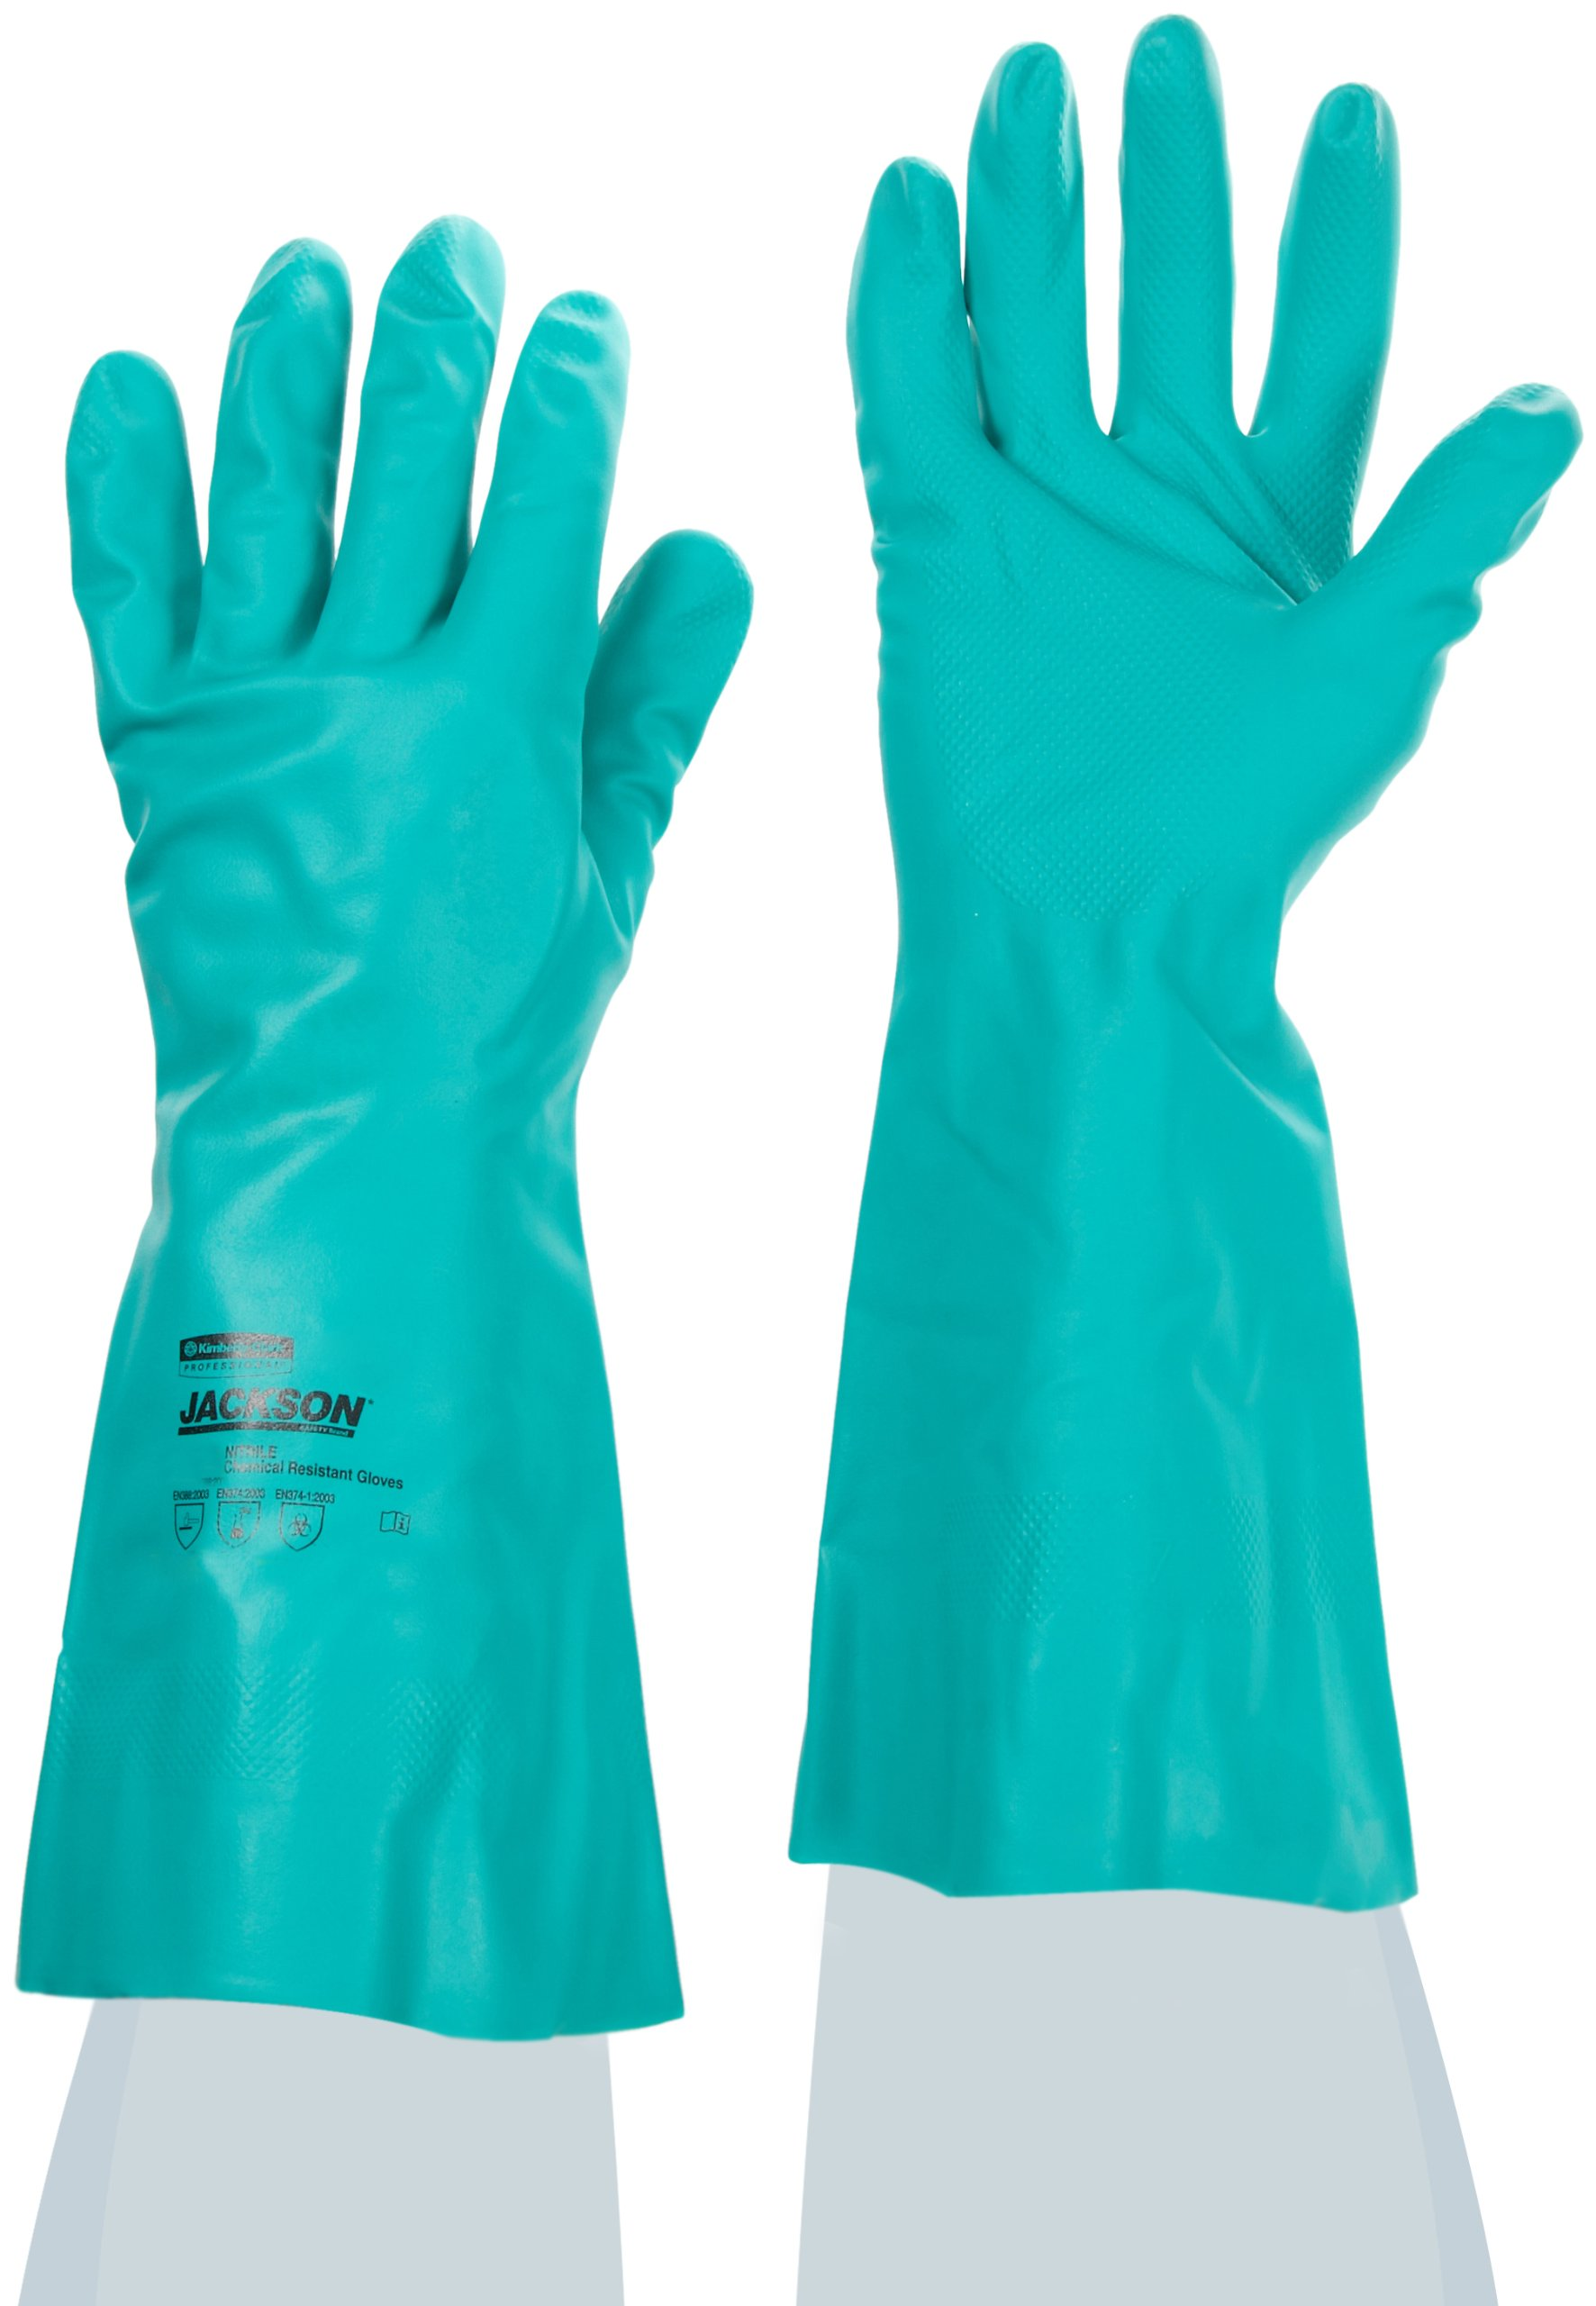 Jackson Safety G80 Nitrile Glove, Chemical Resistant, 15 mil Thickness, 13'' Length, 2X-Large, Green (Case of 60 Pairs)